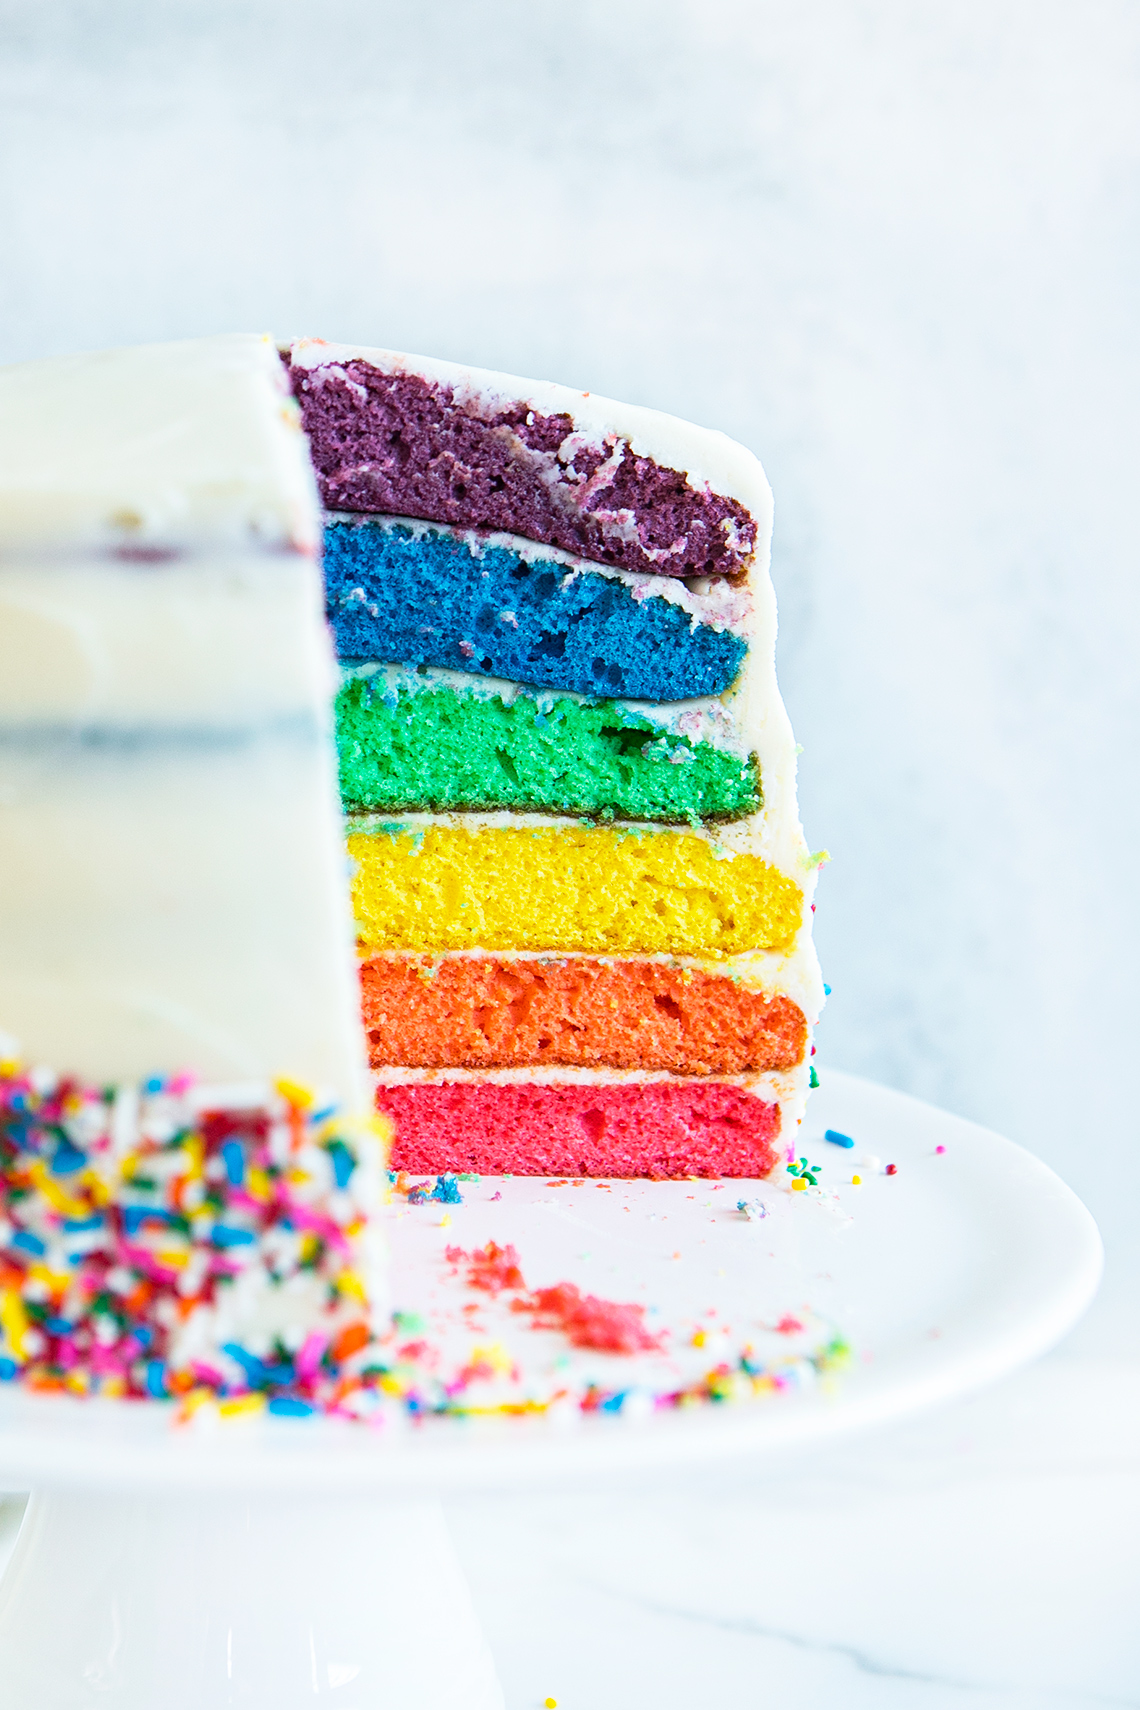 side view of rainbow cake with a slice cut out